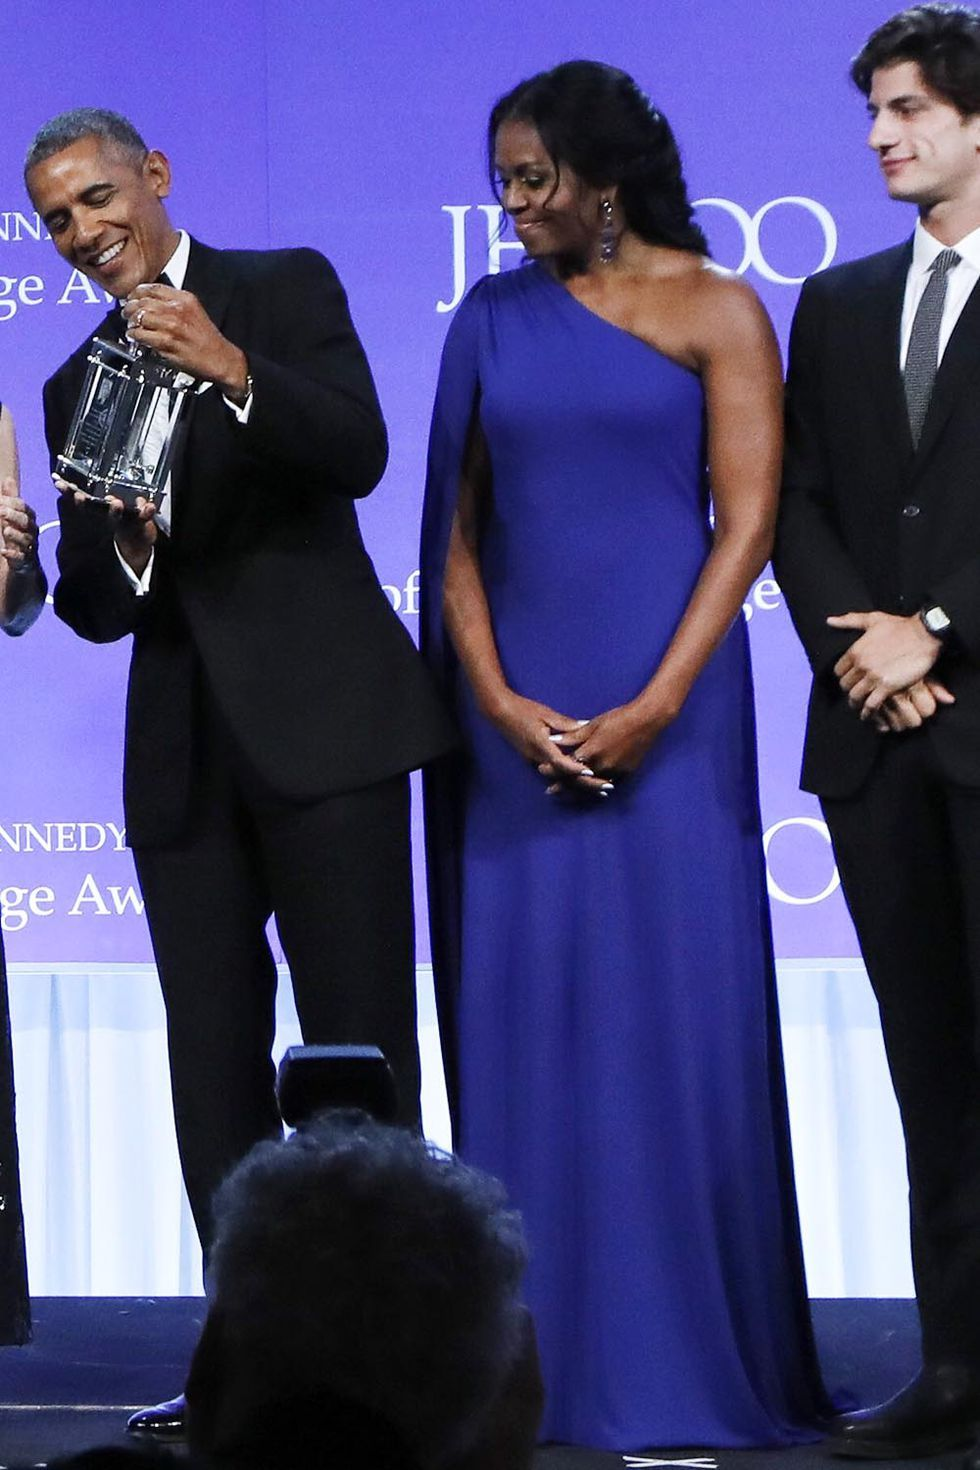 Michelle Obama Wearing A Thong